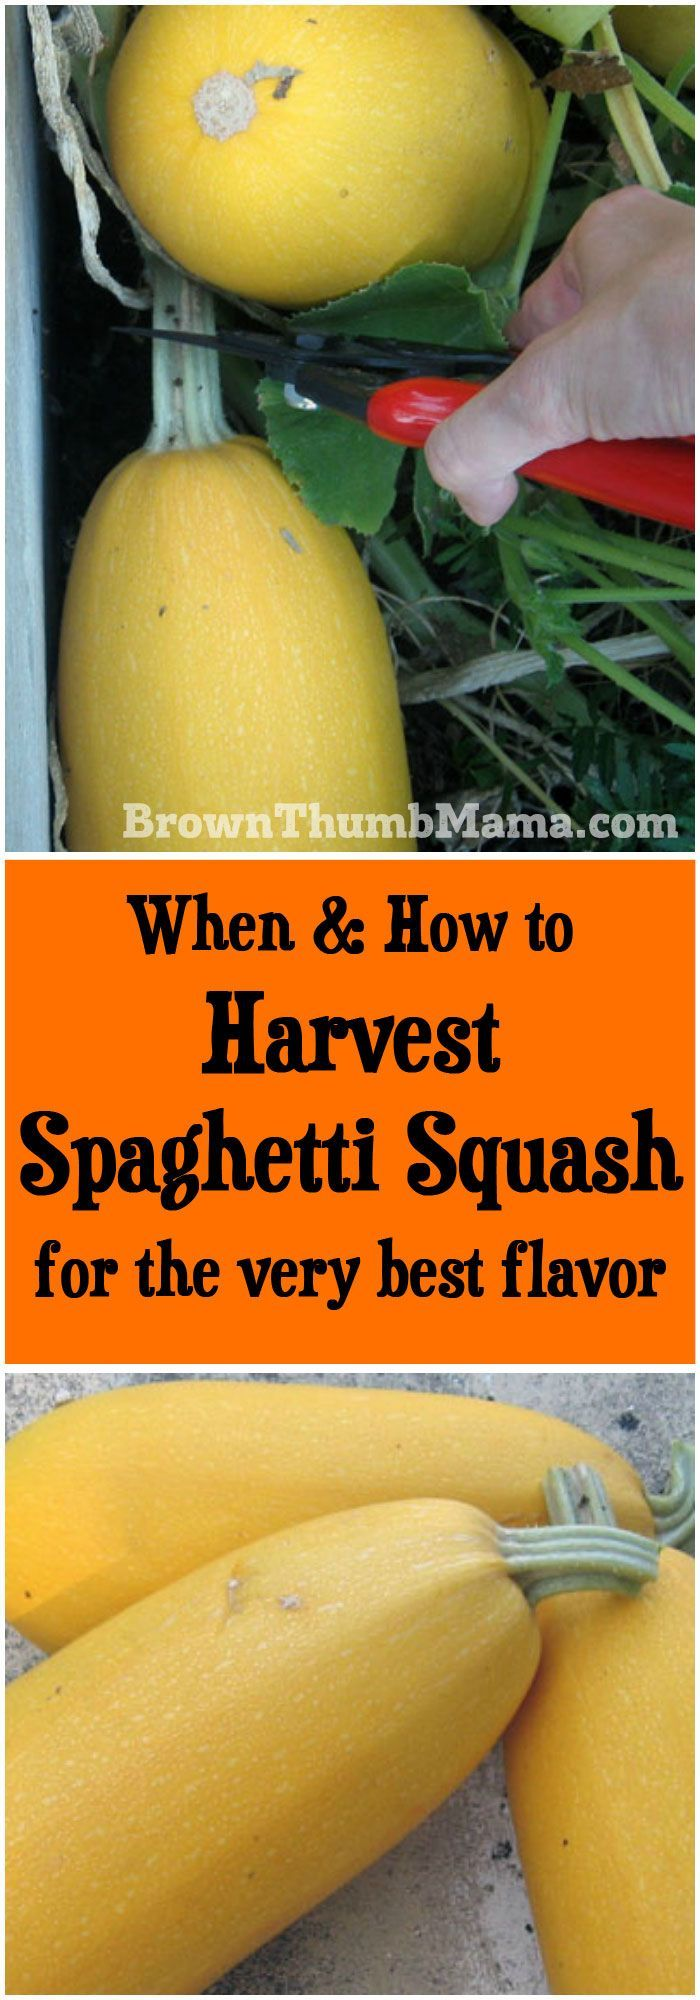 Here S How To Tell When Your Spaghetti Squash Are Ripe And Ready To Harvest Gardening Spagh Organic Gardening Tips Spaghetti Squash Organic Vegetable Garden